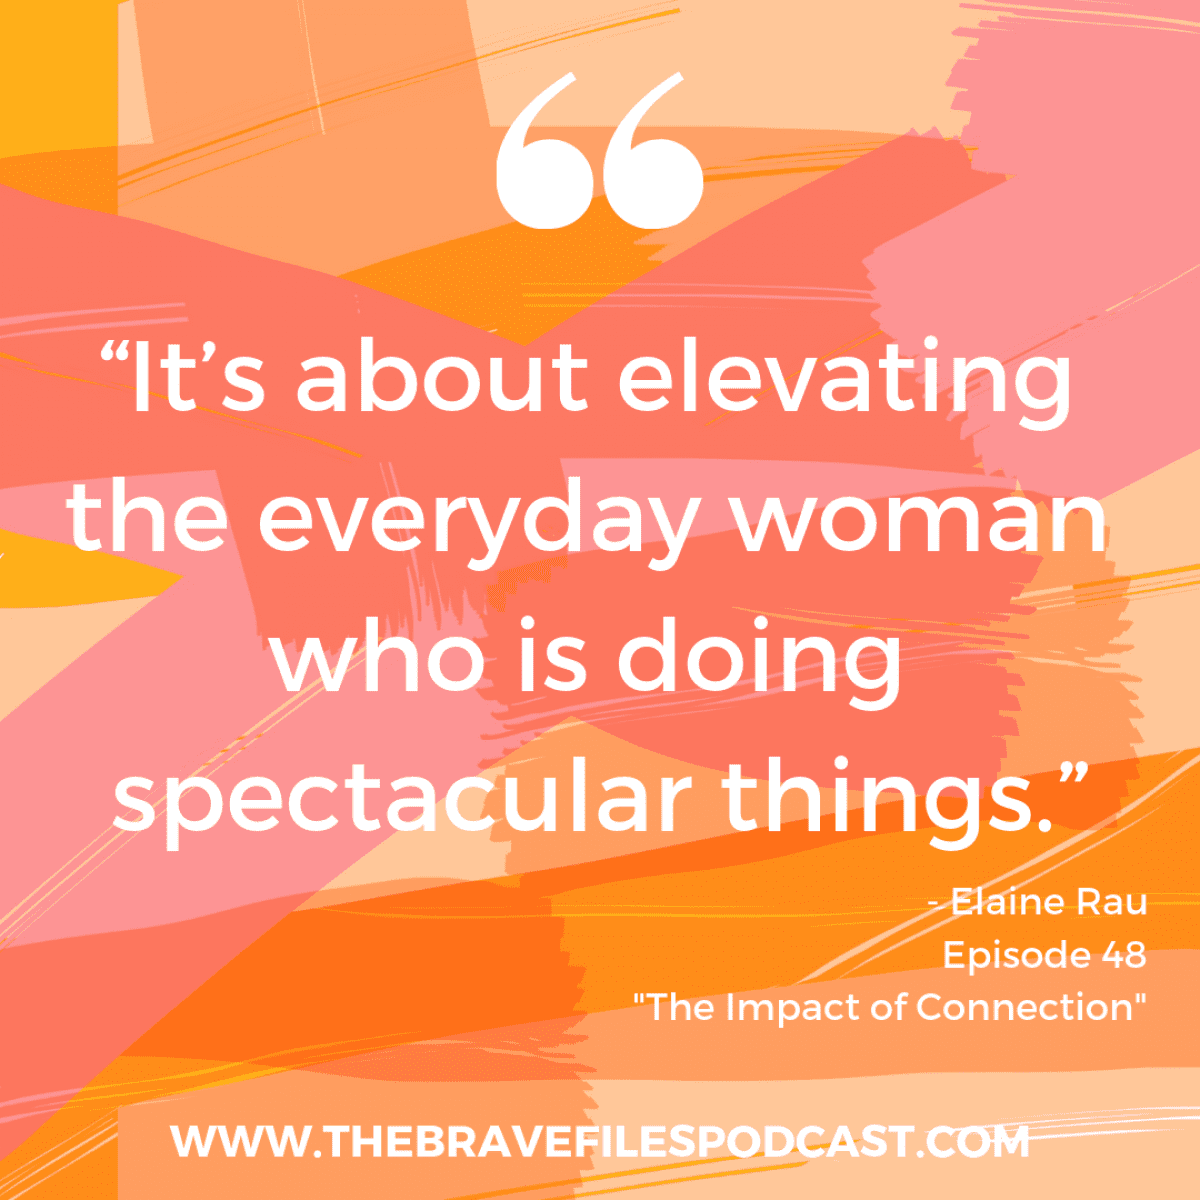 Elaine Rau joins The Brave Files Podcast to talk about online businesses that support women and success.